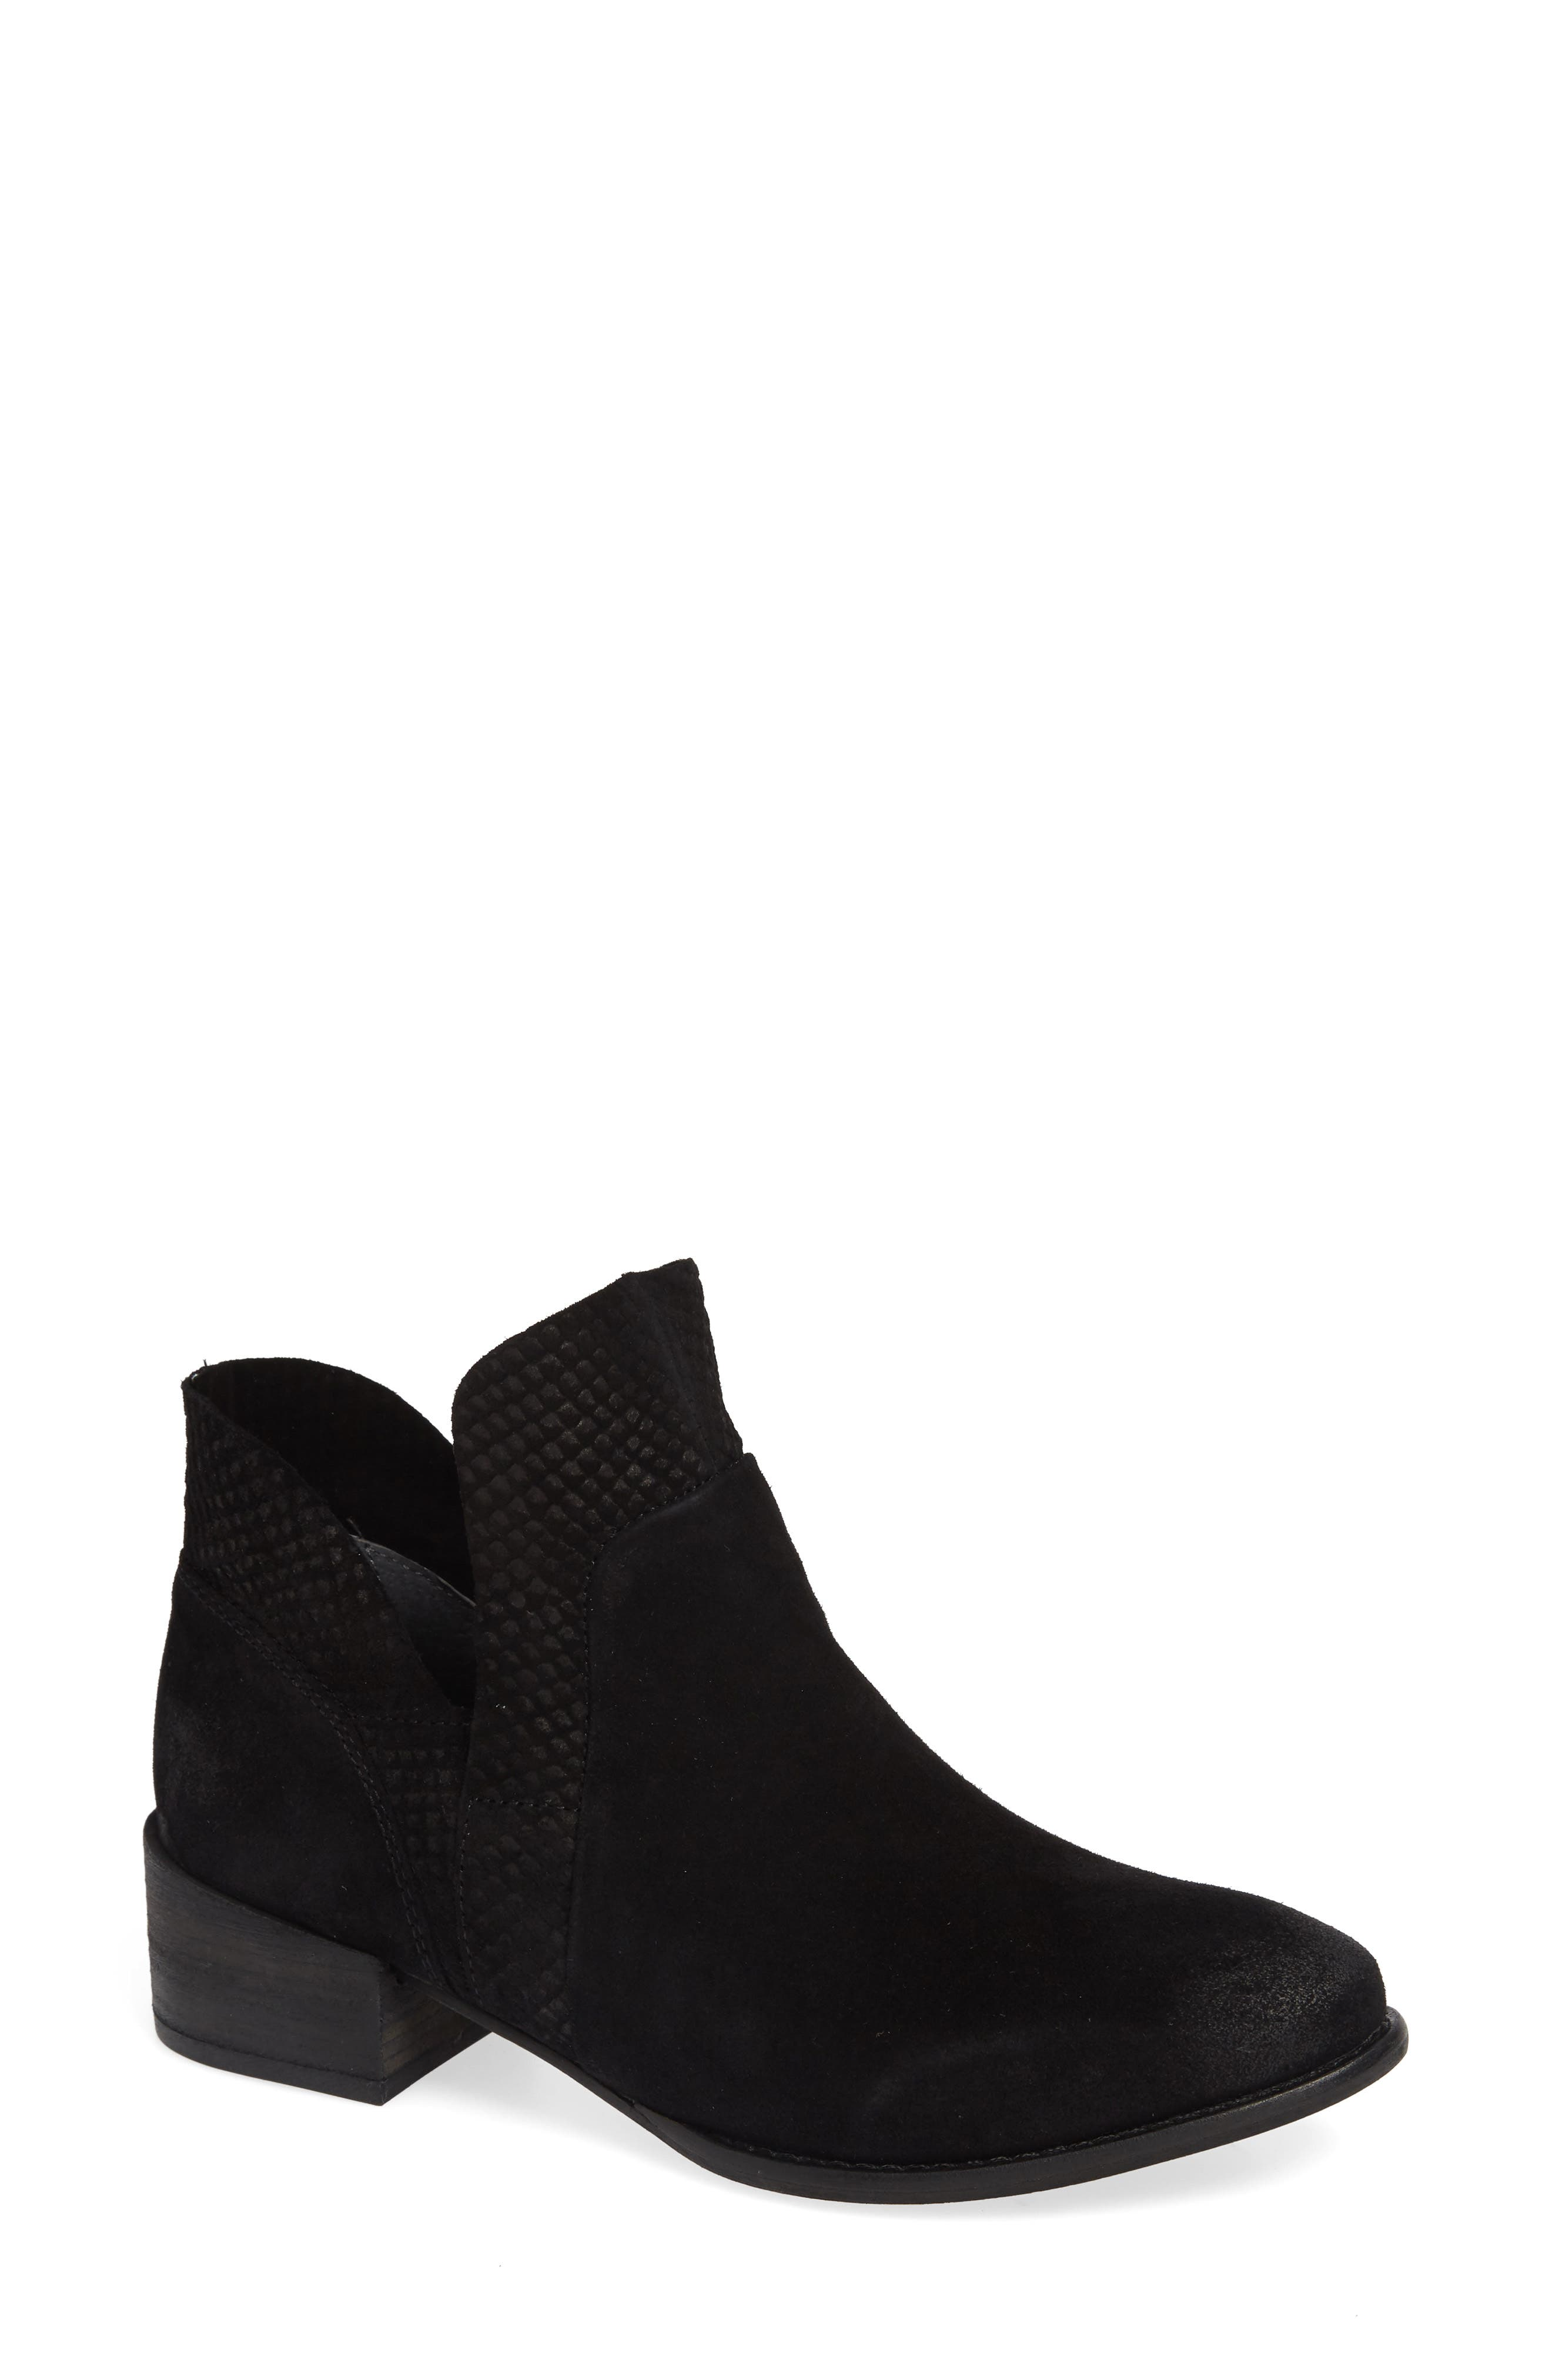 Score Bootie,                         Main,                         color, BLACK SUEDE